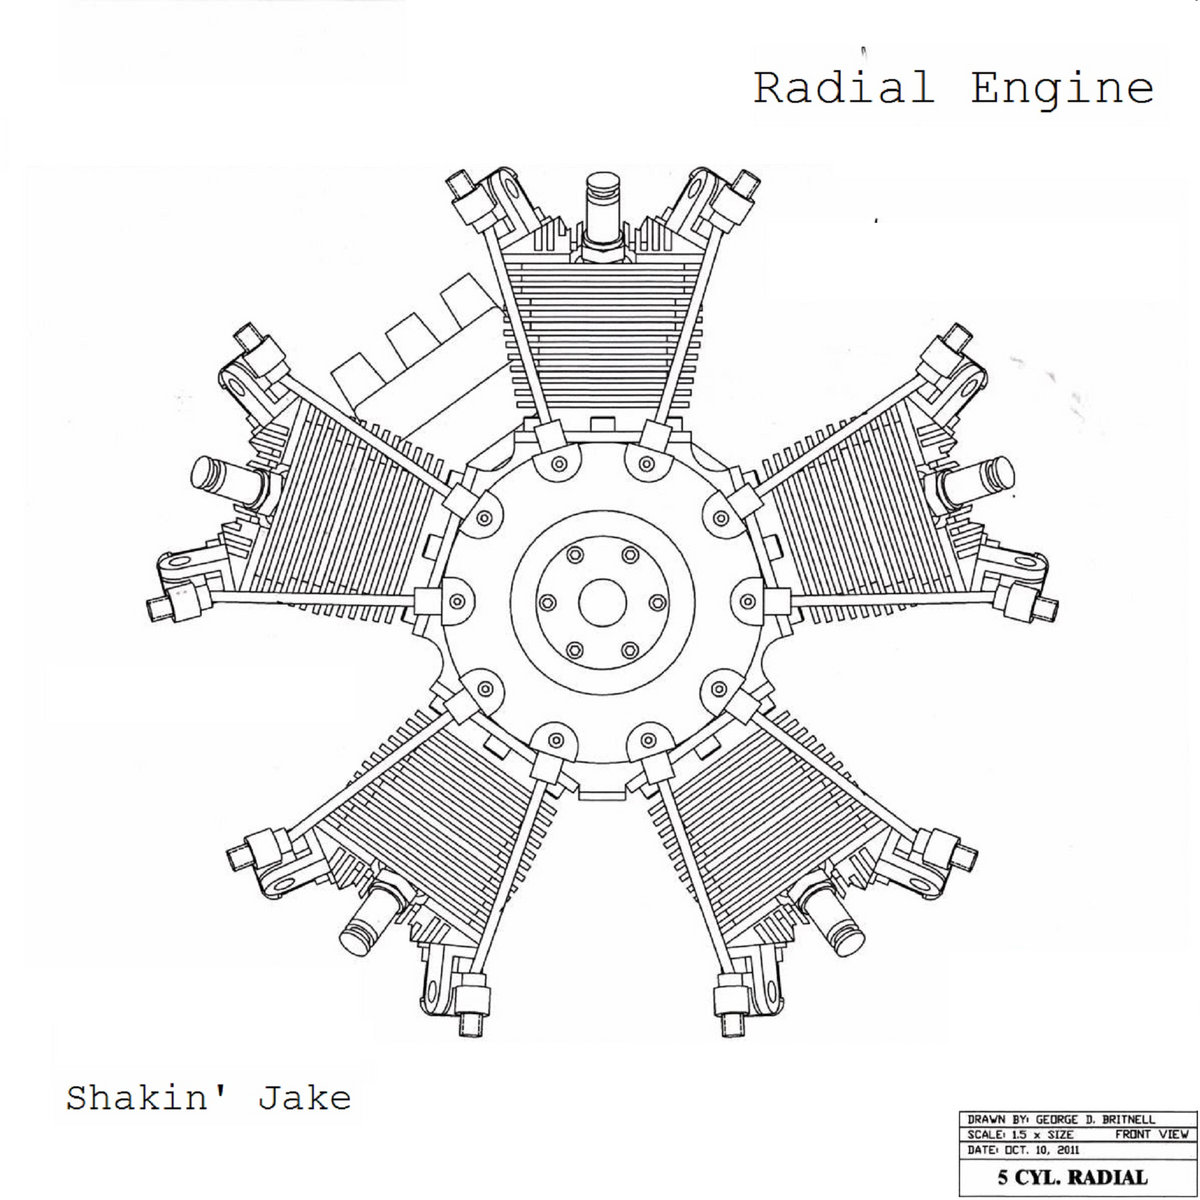 Radial Engine image